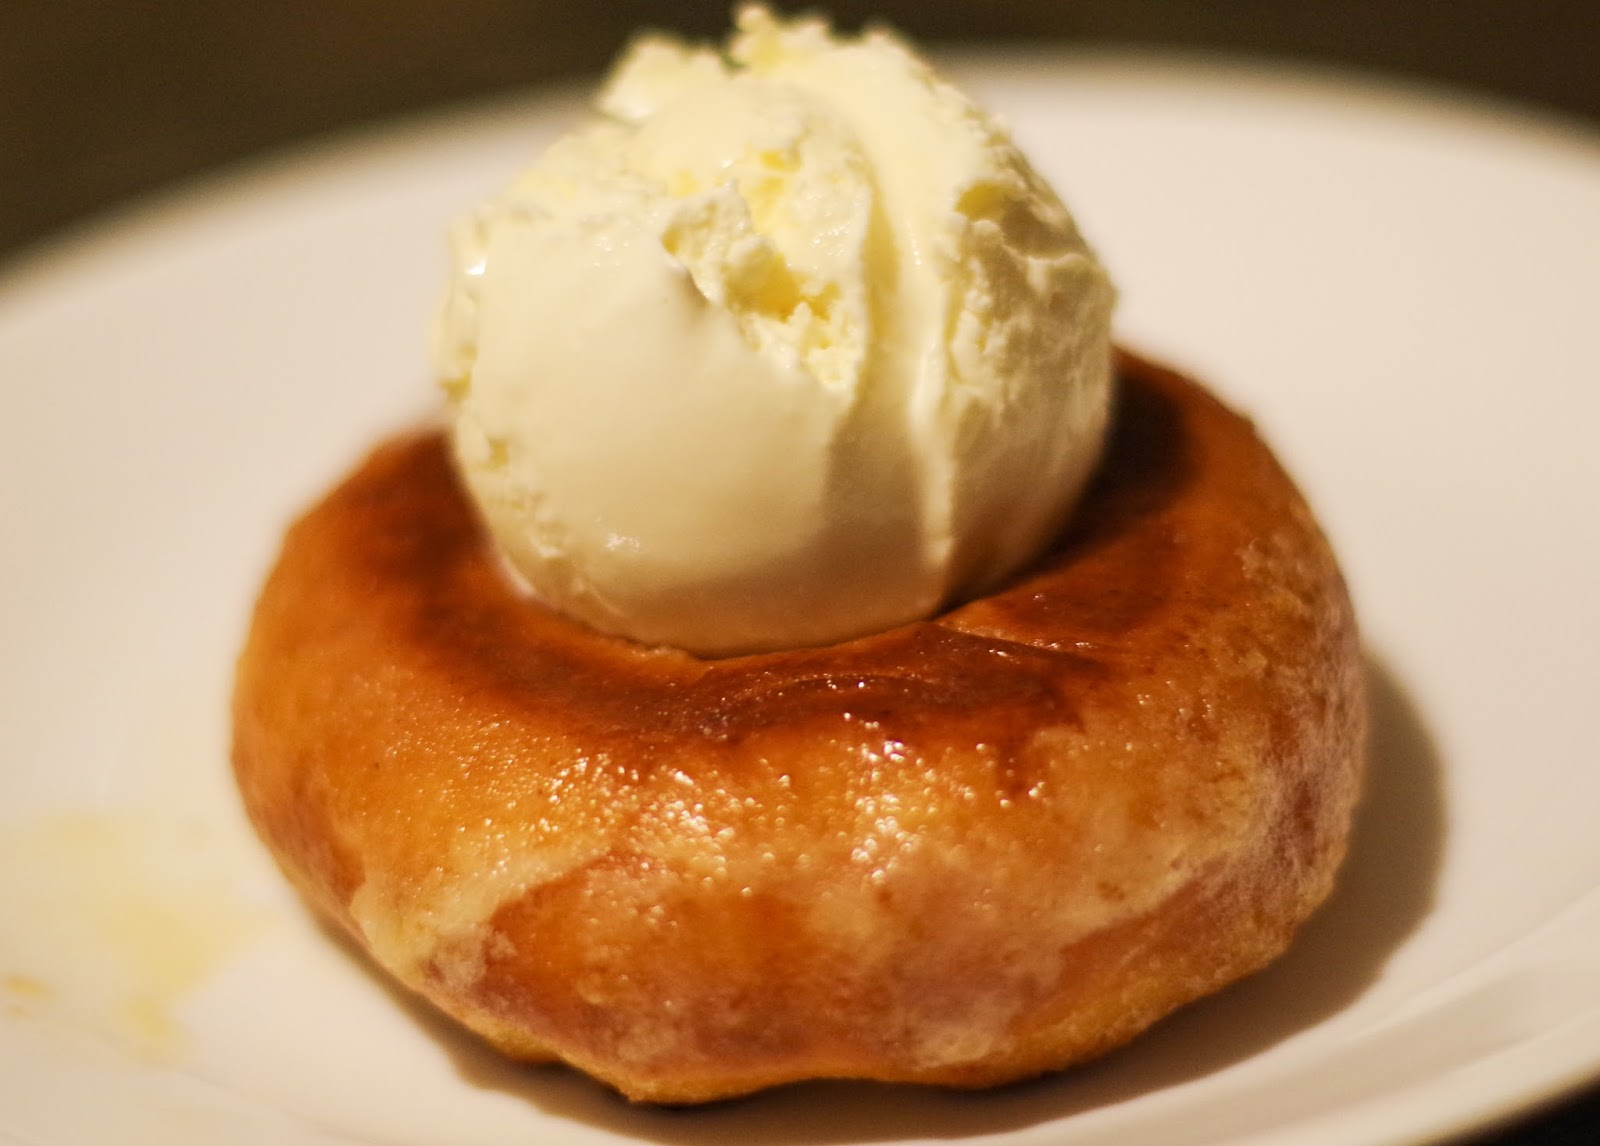 A glazed donut shallow fried in butter and served with ice cream. Amazing.